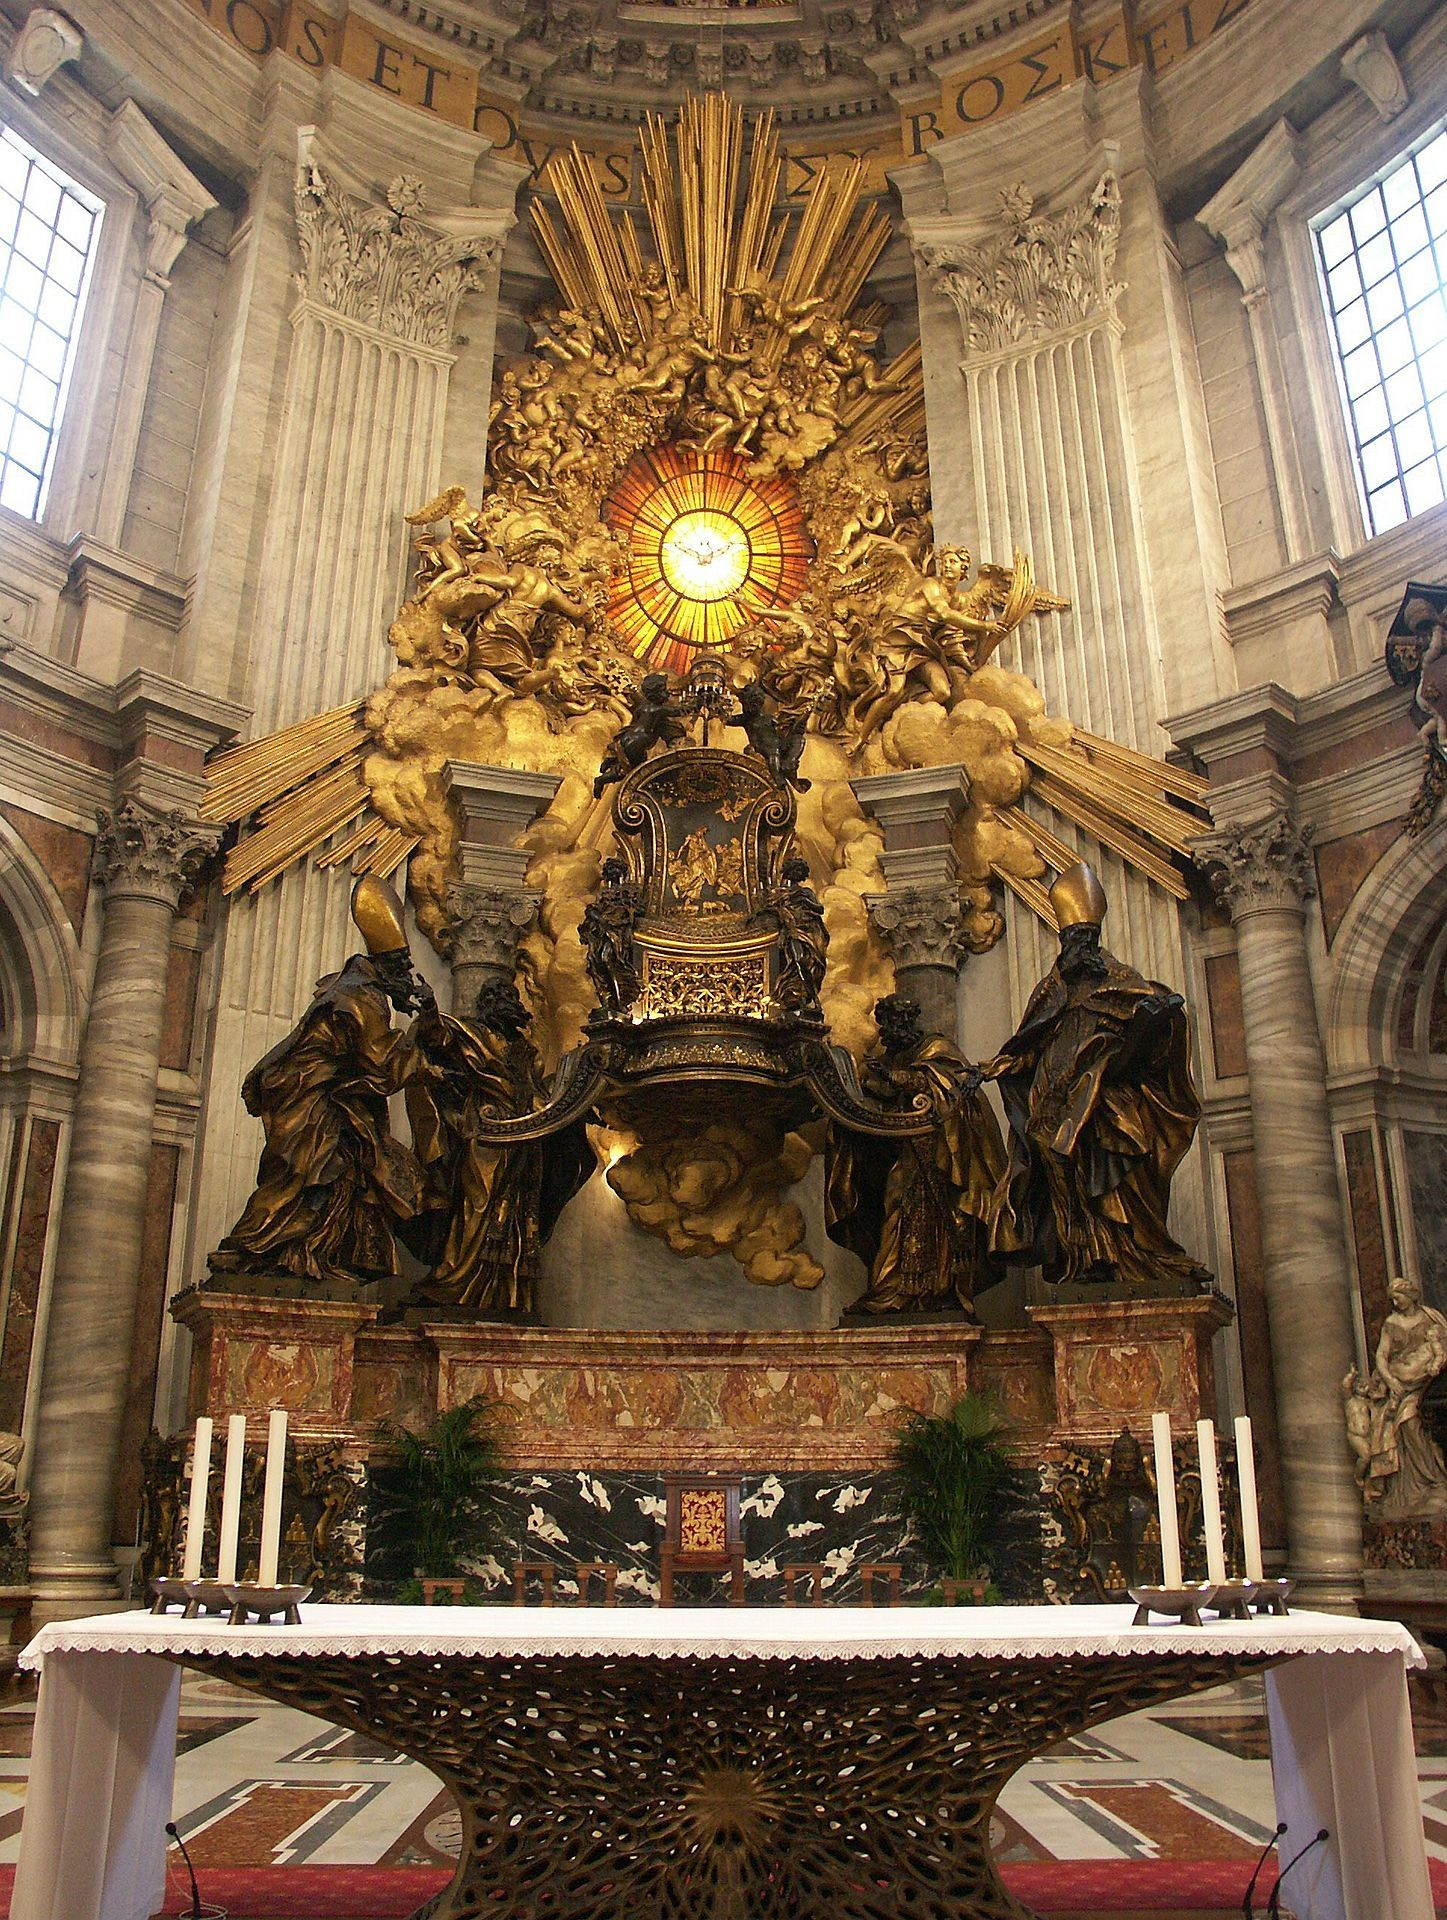 cathedra petri gian lorenzo bernini baroque gian lorenzo bernini biography gian lorenzo bernini a notable architect great sculptor and prominent artist of was born on 1598 in